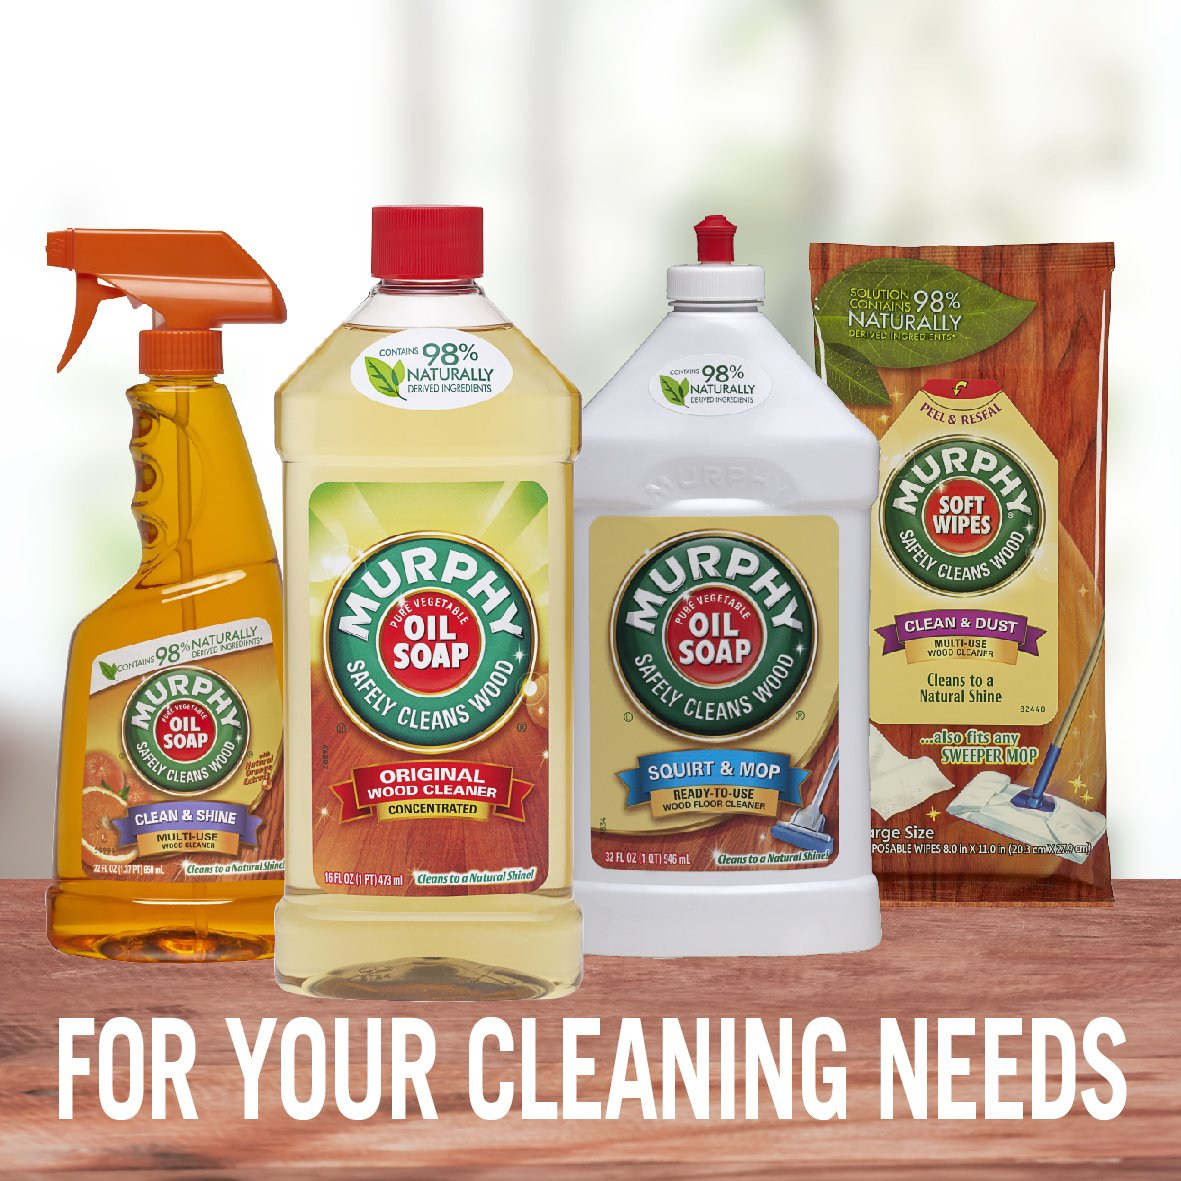 MURPHY OIL SOAP Wood Cleaner, Original, Concentrated Formula, Floor Cleaner, Multi-Use Wood Cleaner, Finished Surface Cleaner, 128 Fluid Ounce (US05480A) by Murphy Oil (Image #9)